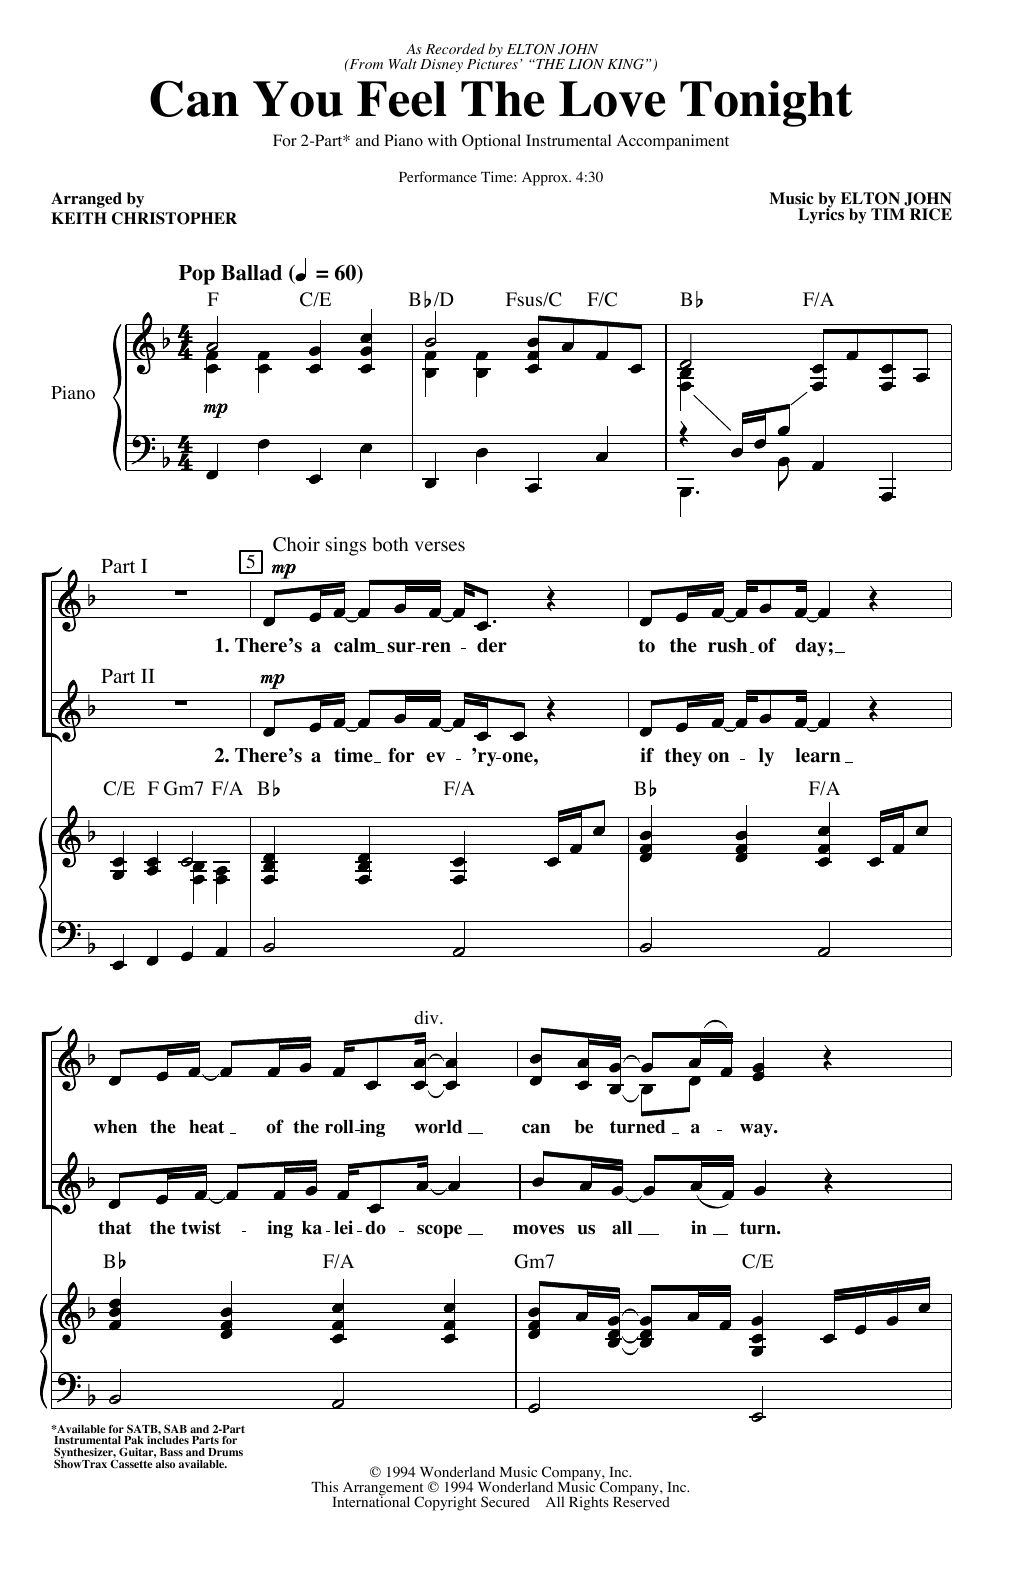 Can You Feel The Love Tonight (from The Lion King) (arr. Keith Christopher) (2-Part Choir)